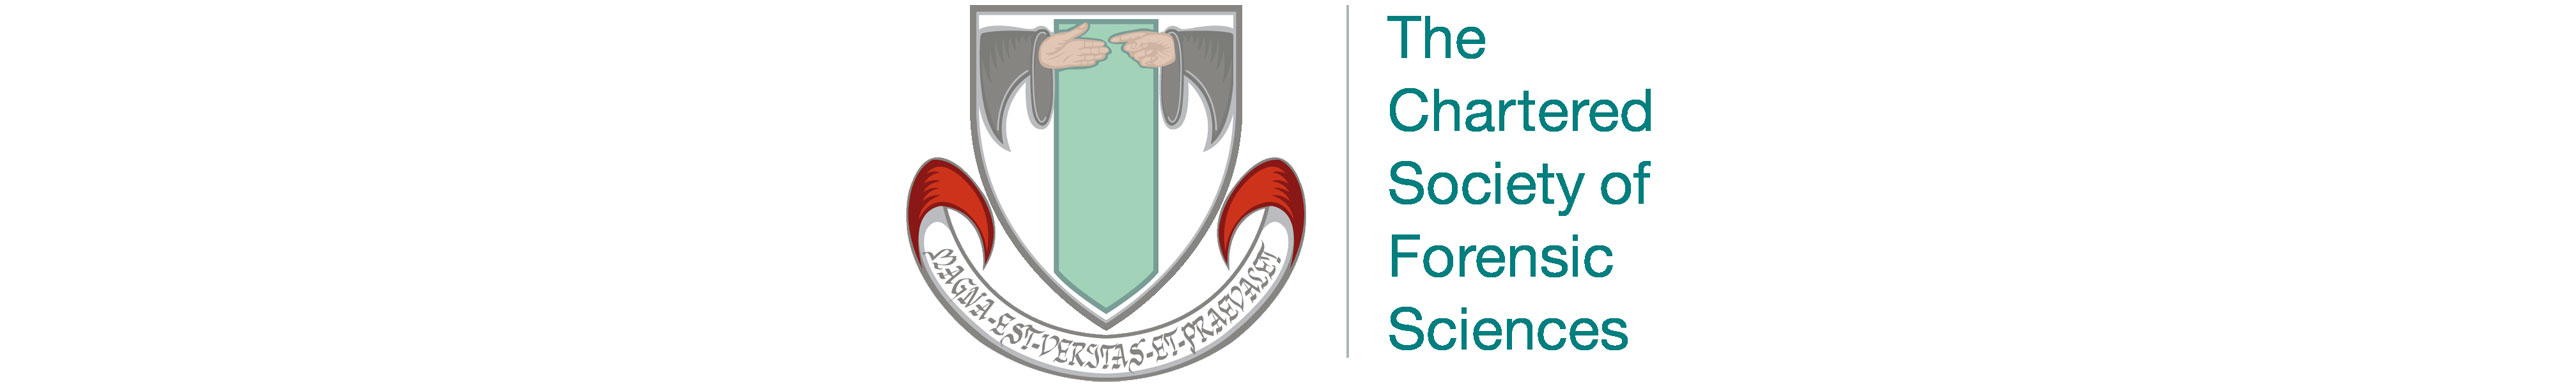 The logo for The Chartered Society of Forensic Sciences.